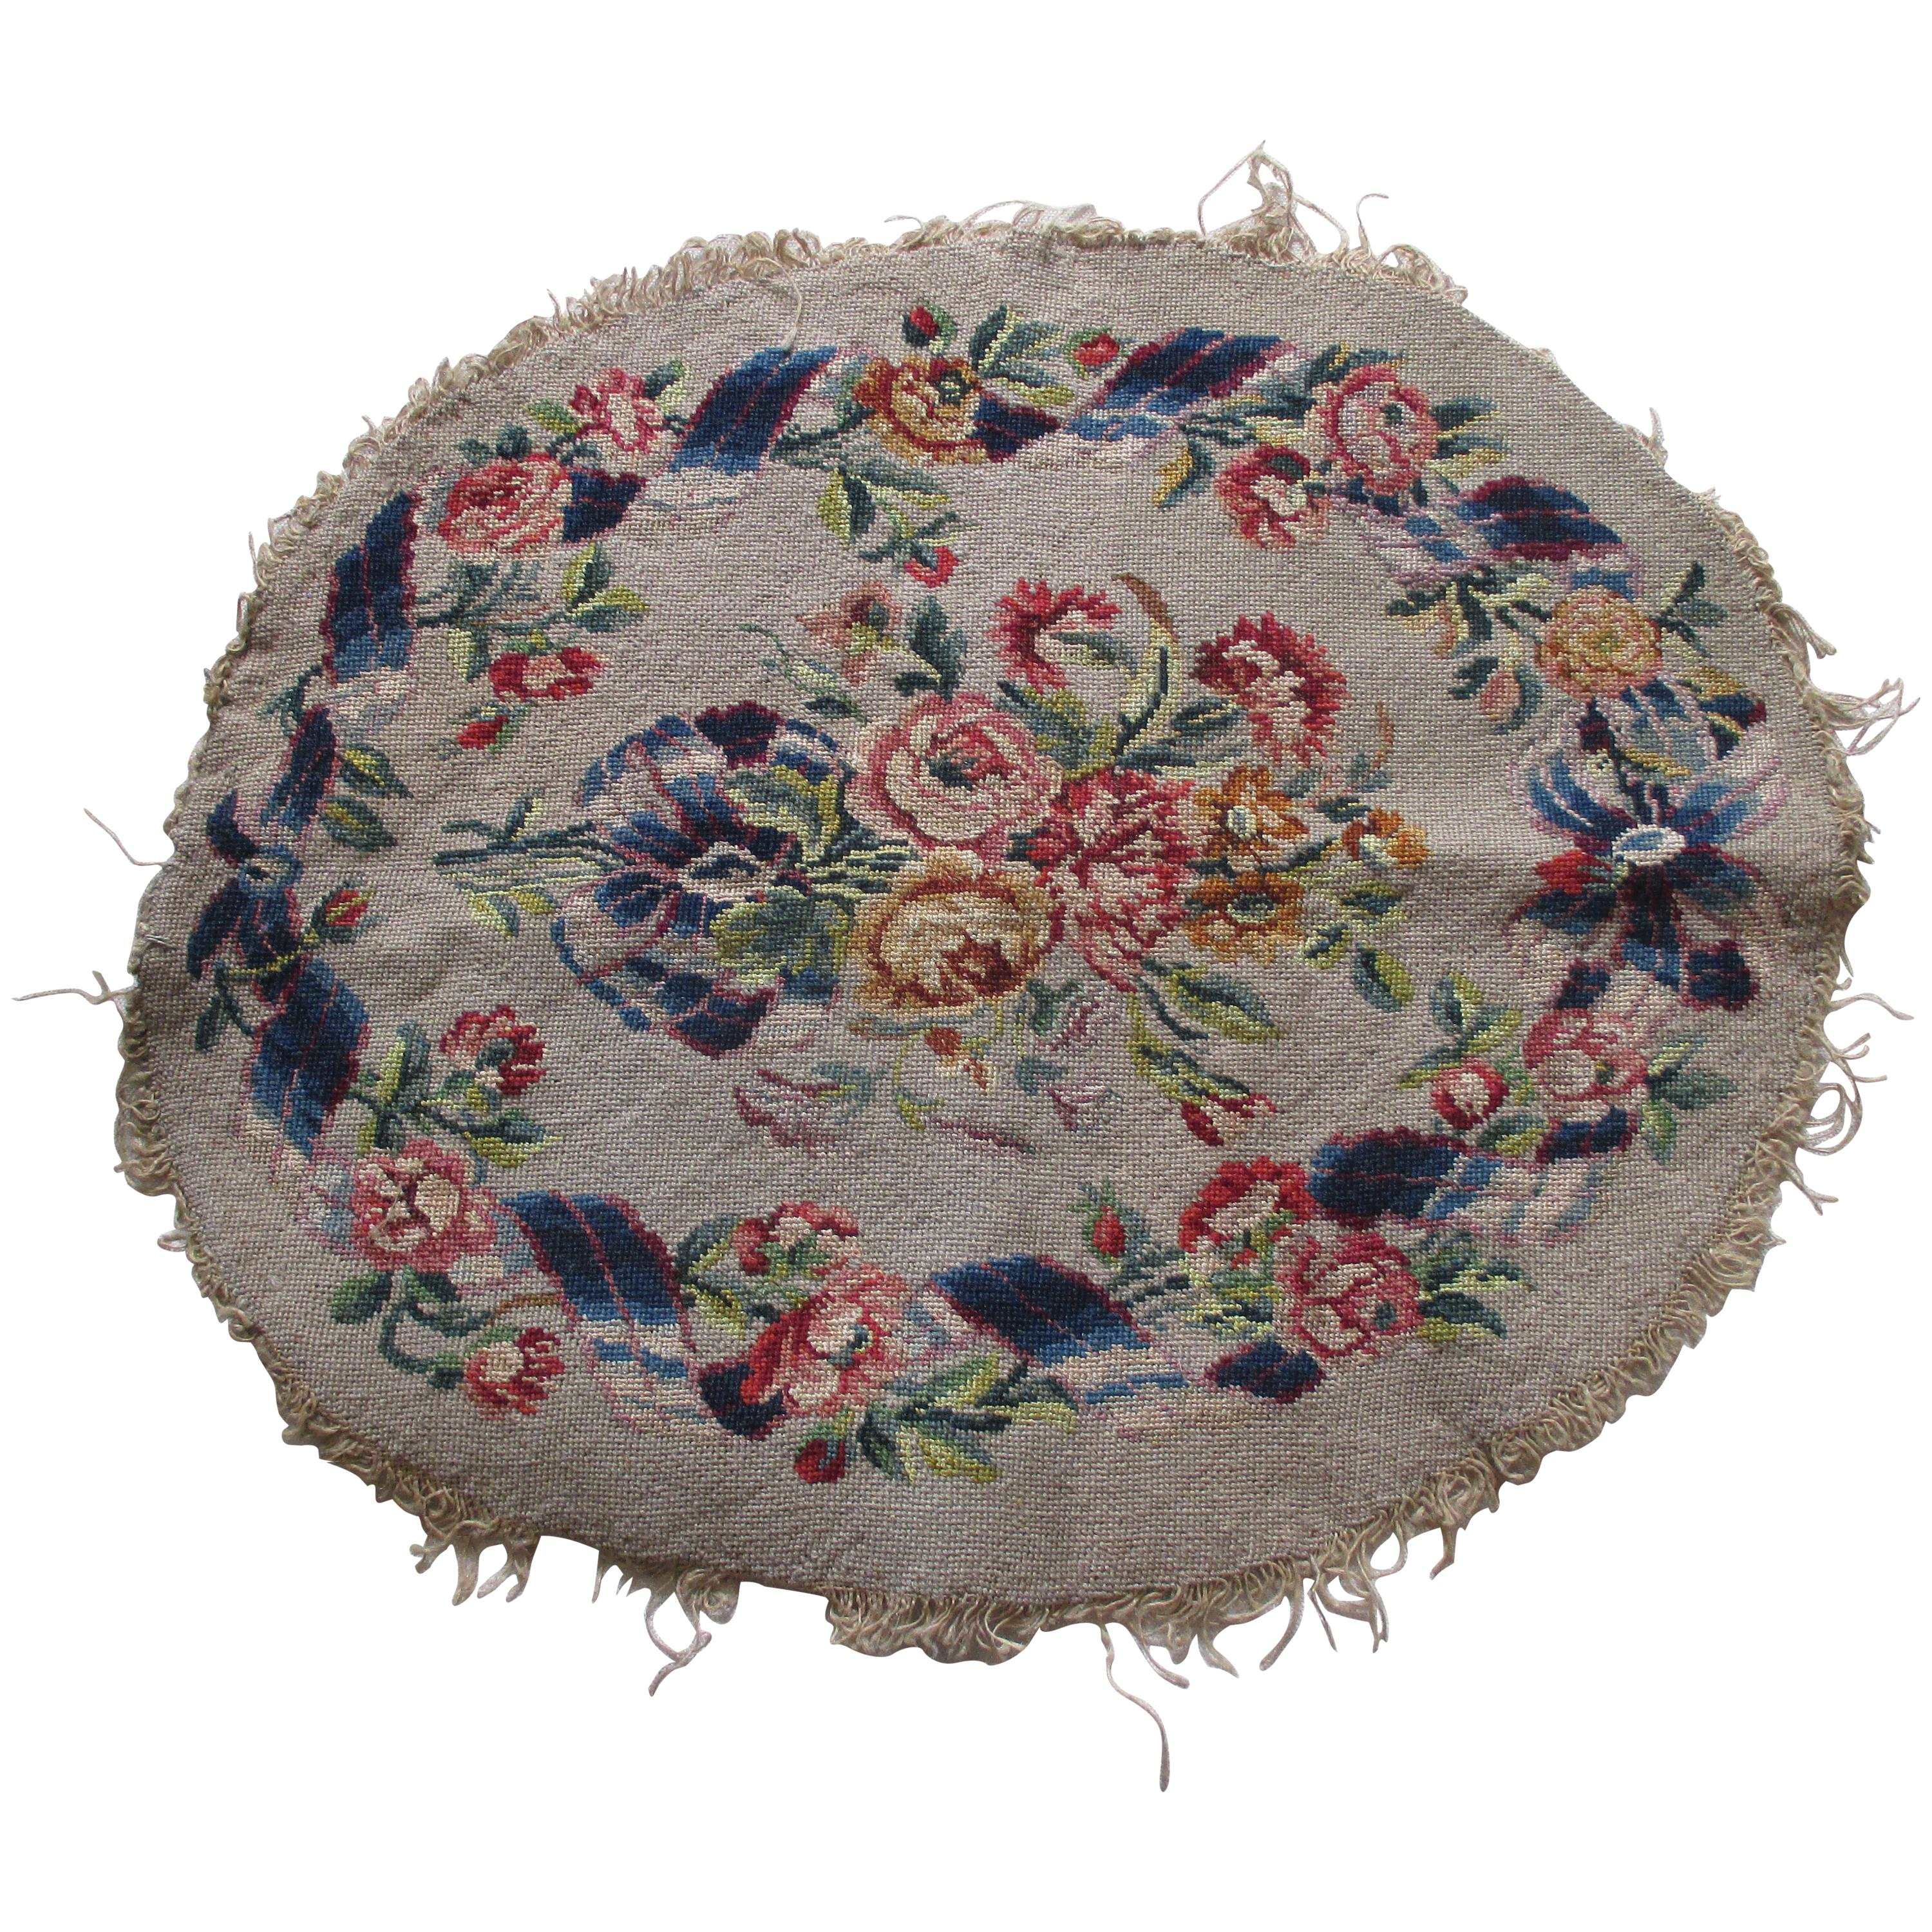 Vintage Oval Tapestry with Garlands and Flowers Design